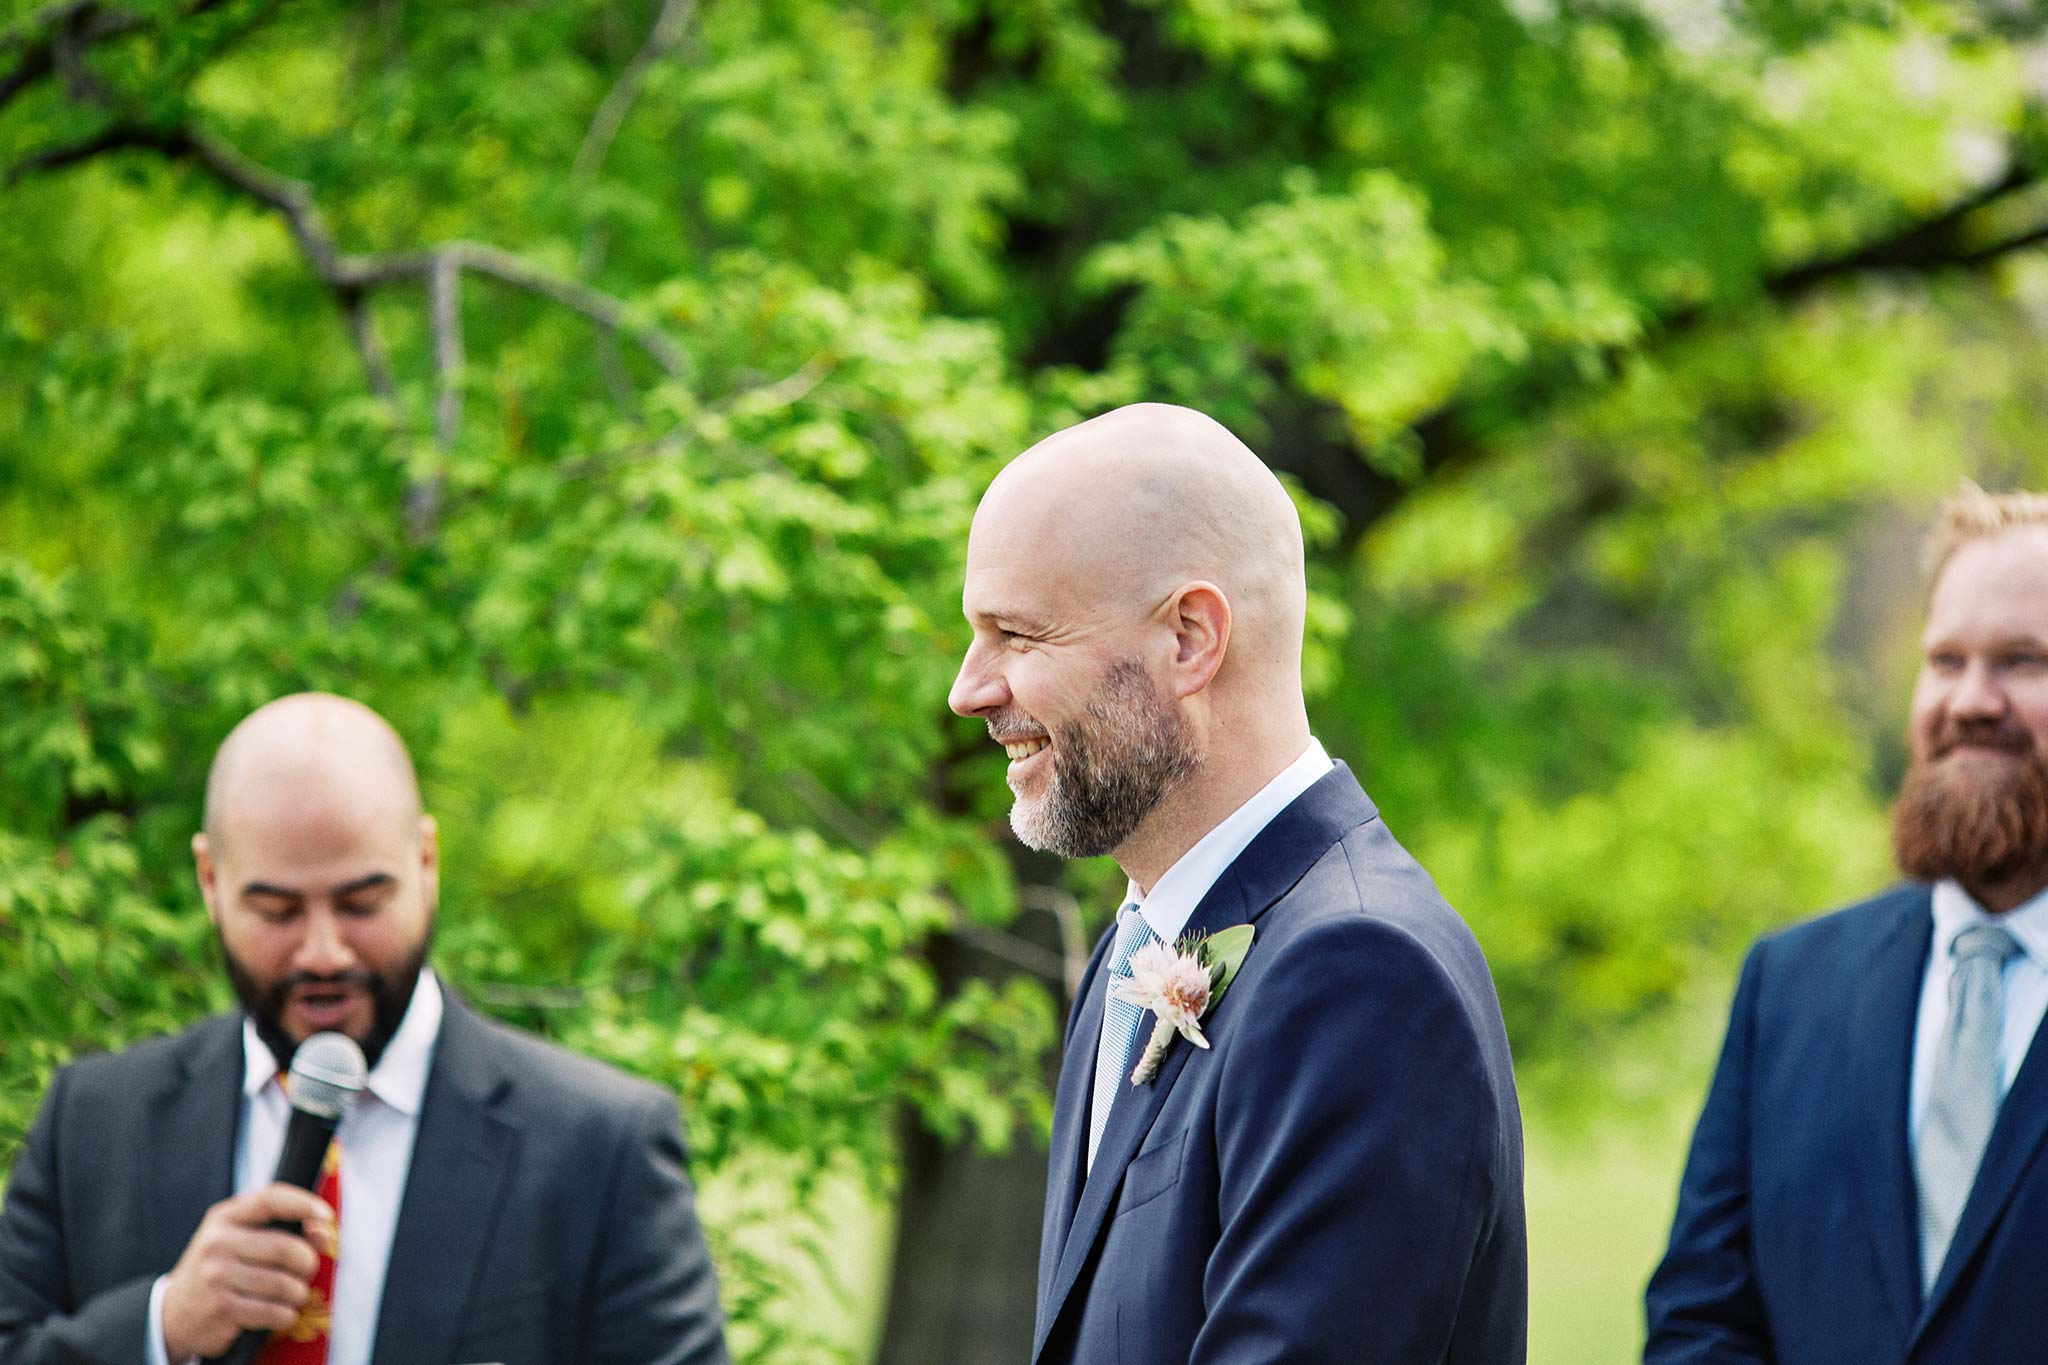 Melbourne Royal Botanical Garden Wedding Ceremony groom profile